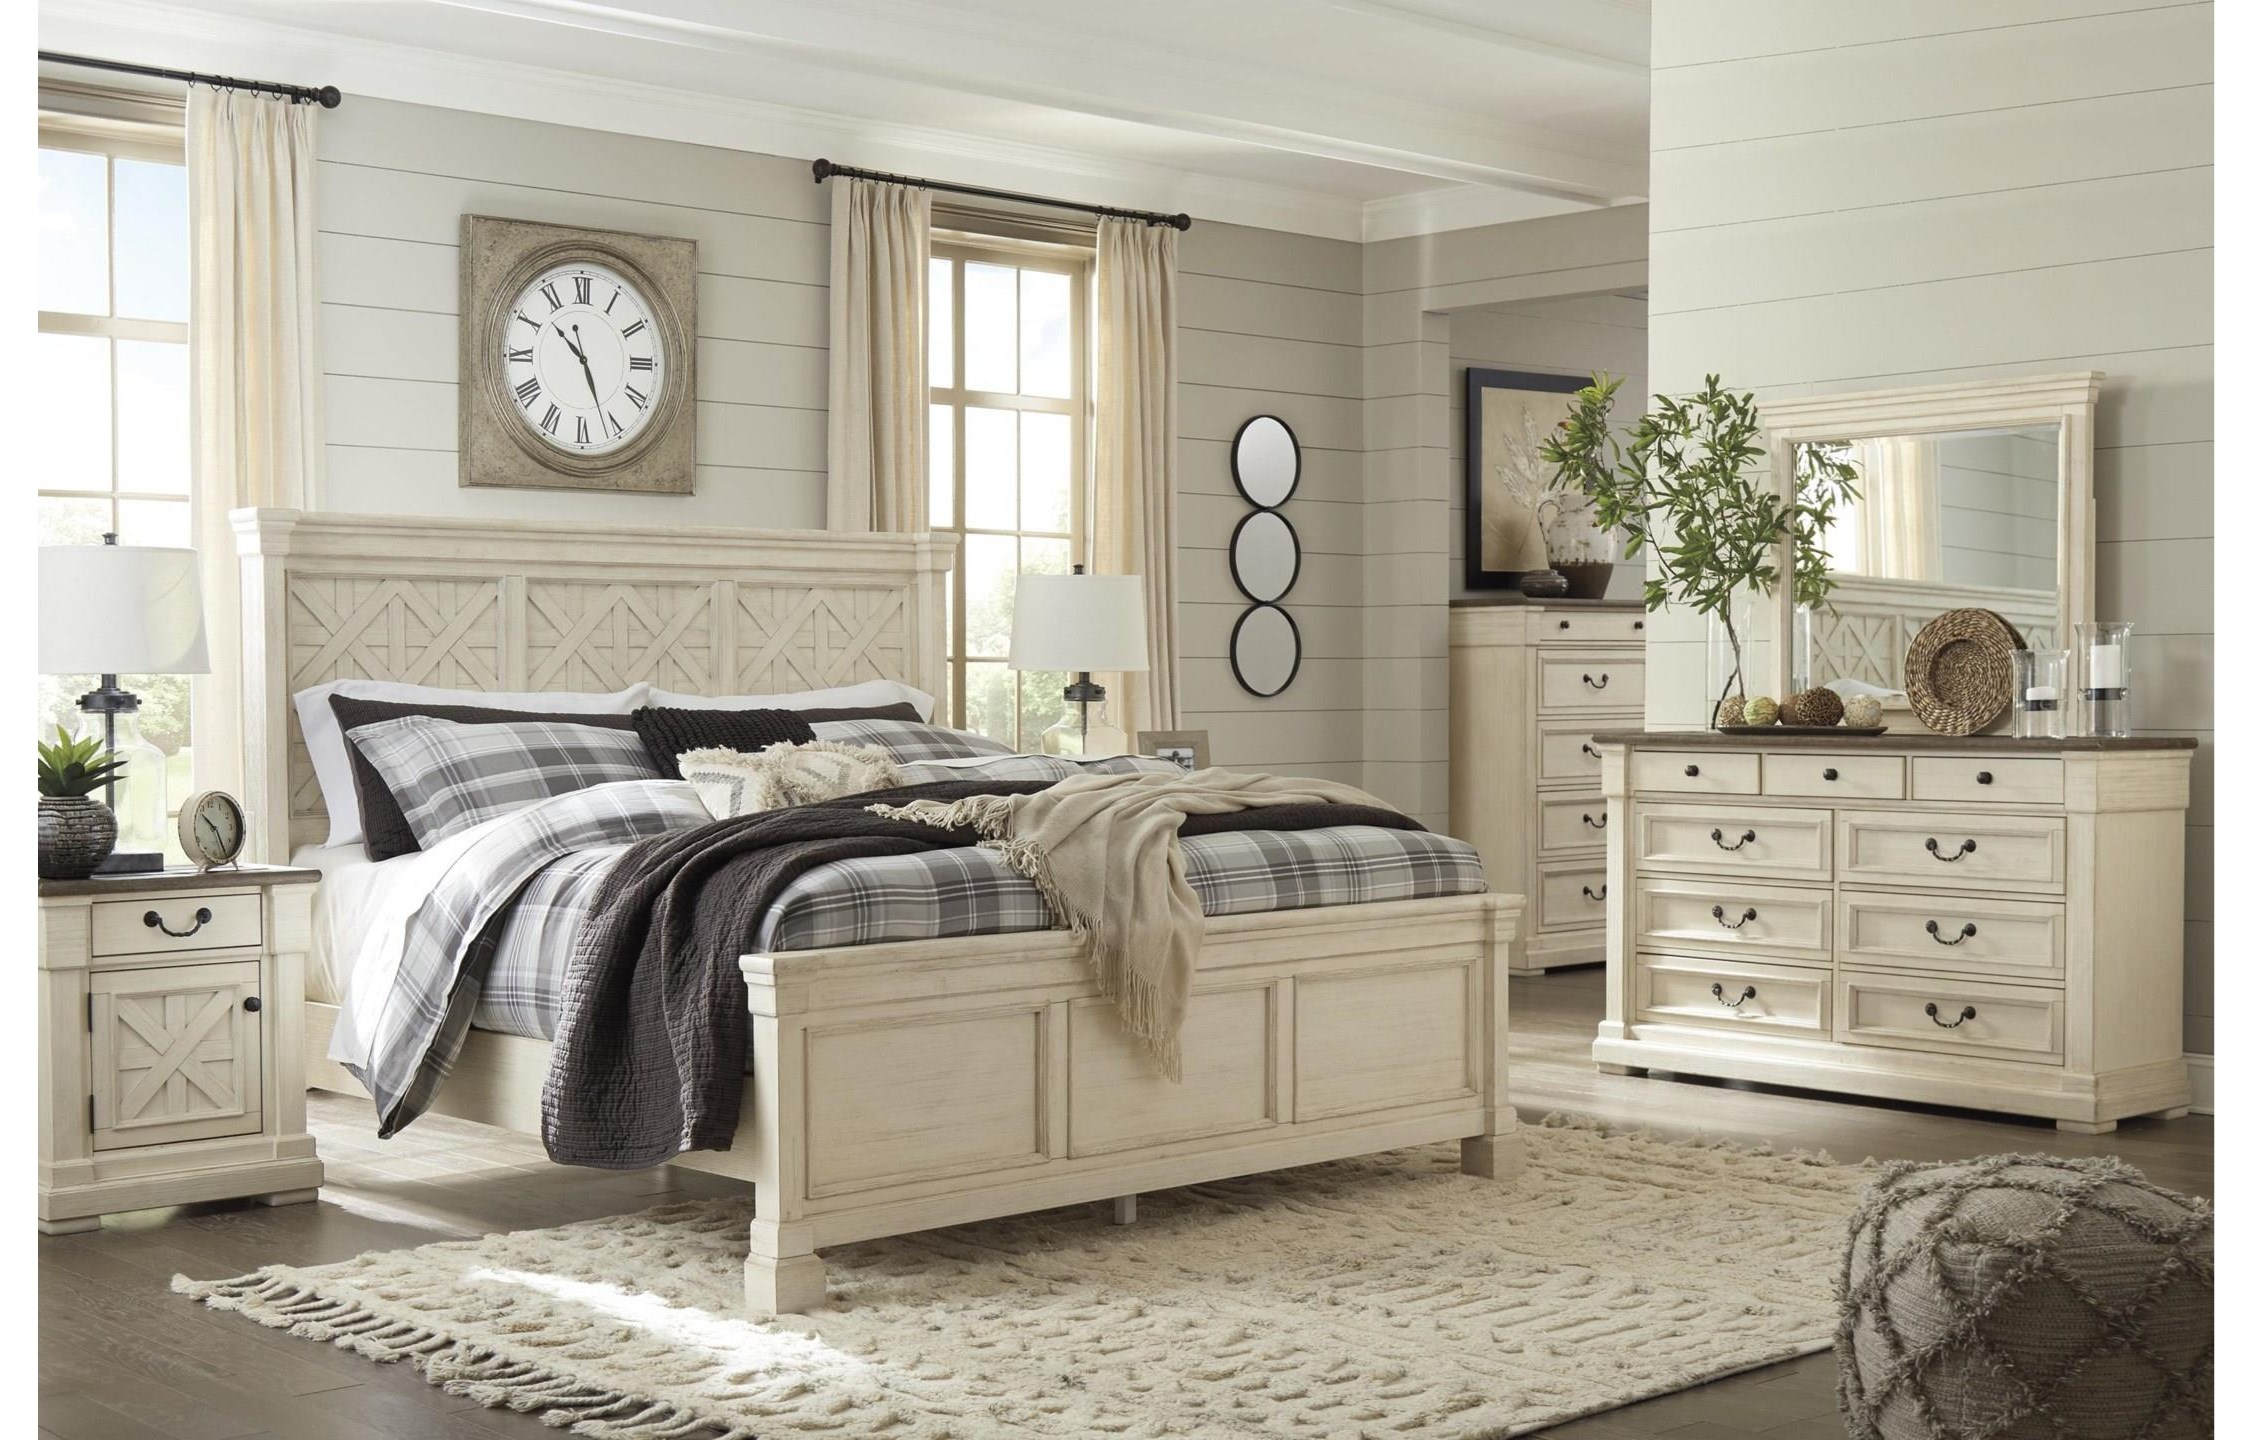 Bolanburg King bedroom group by Signature Design by Ashley at Value City Furniture